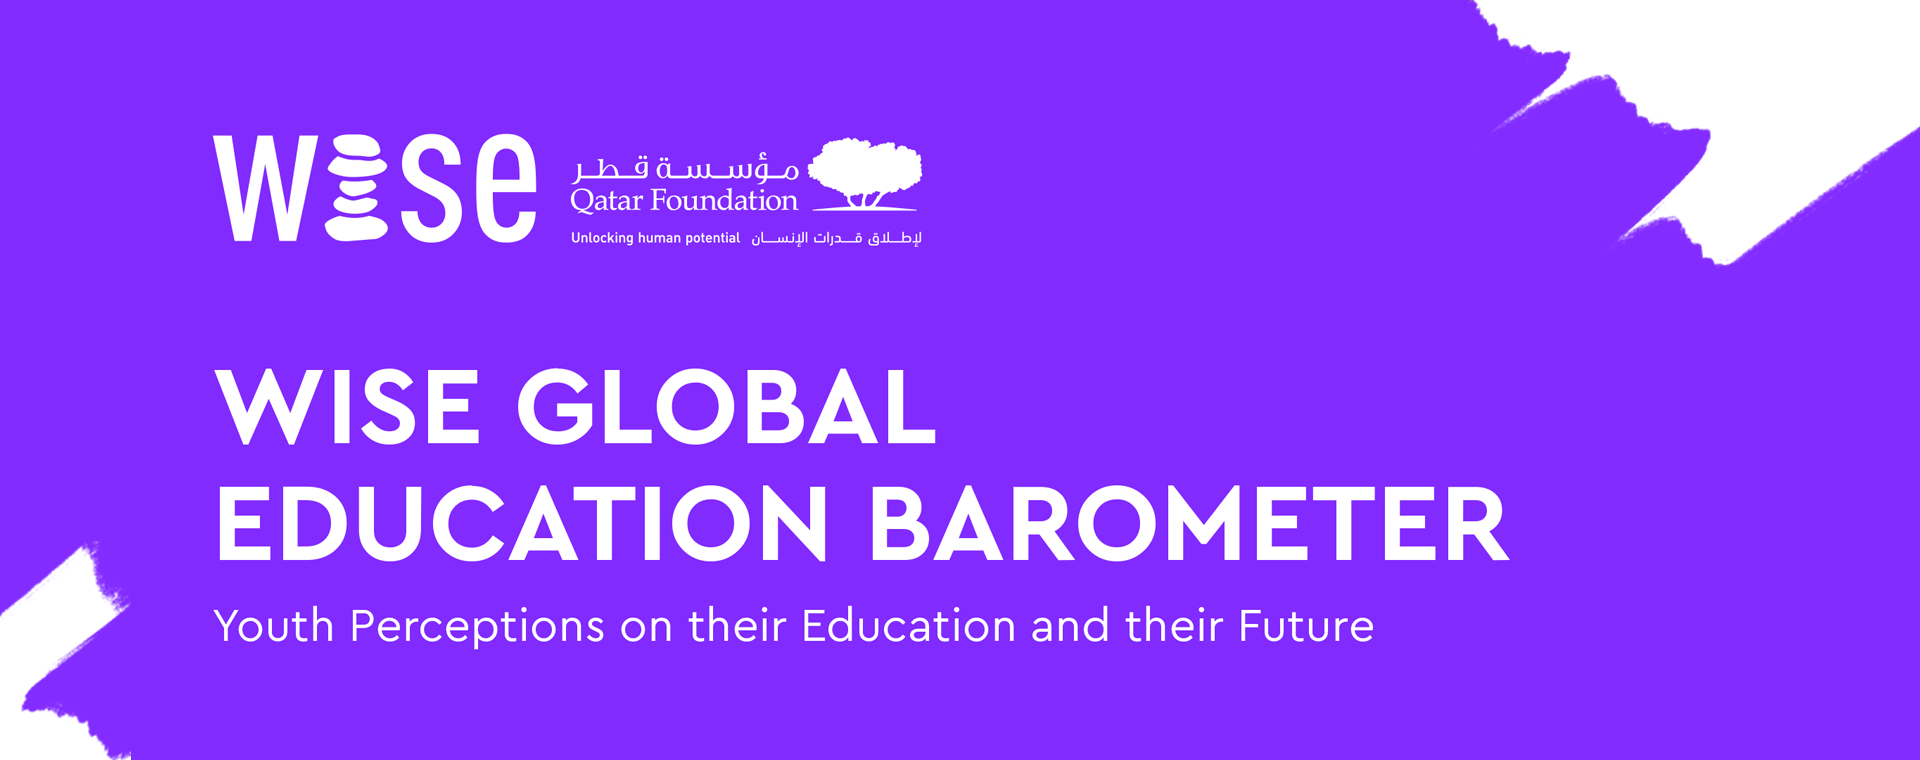 WISE Global Education Barometer – Youth Perceptions on their Education and their Future - WISE